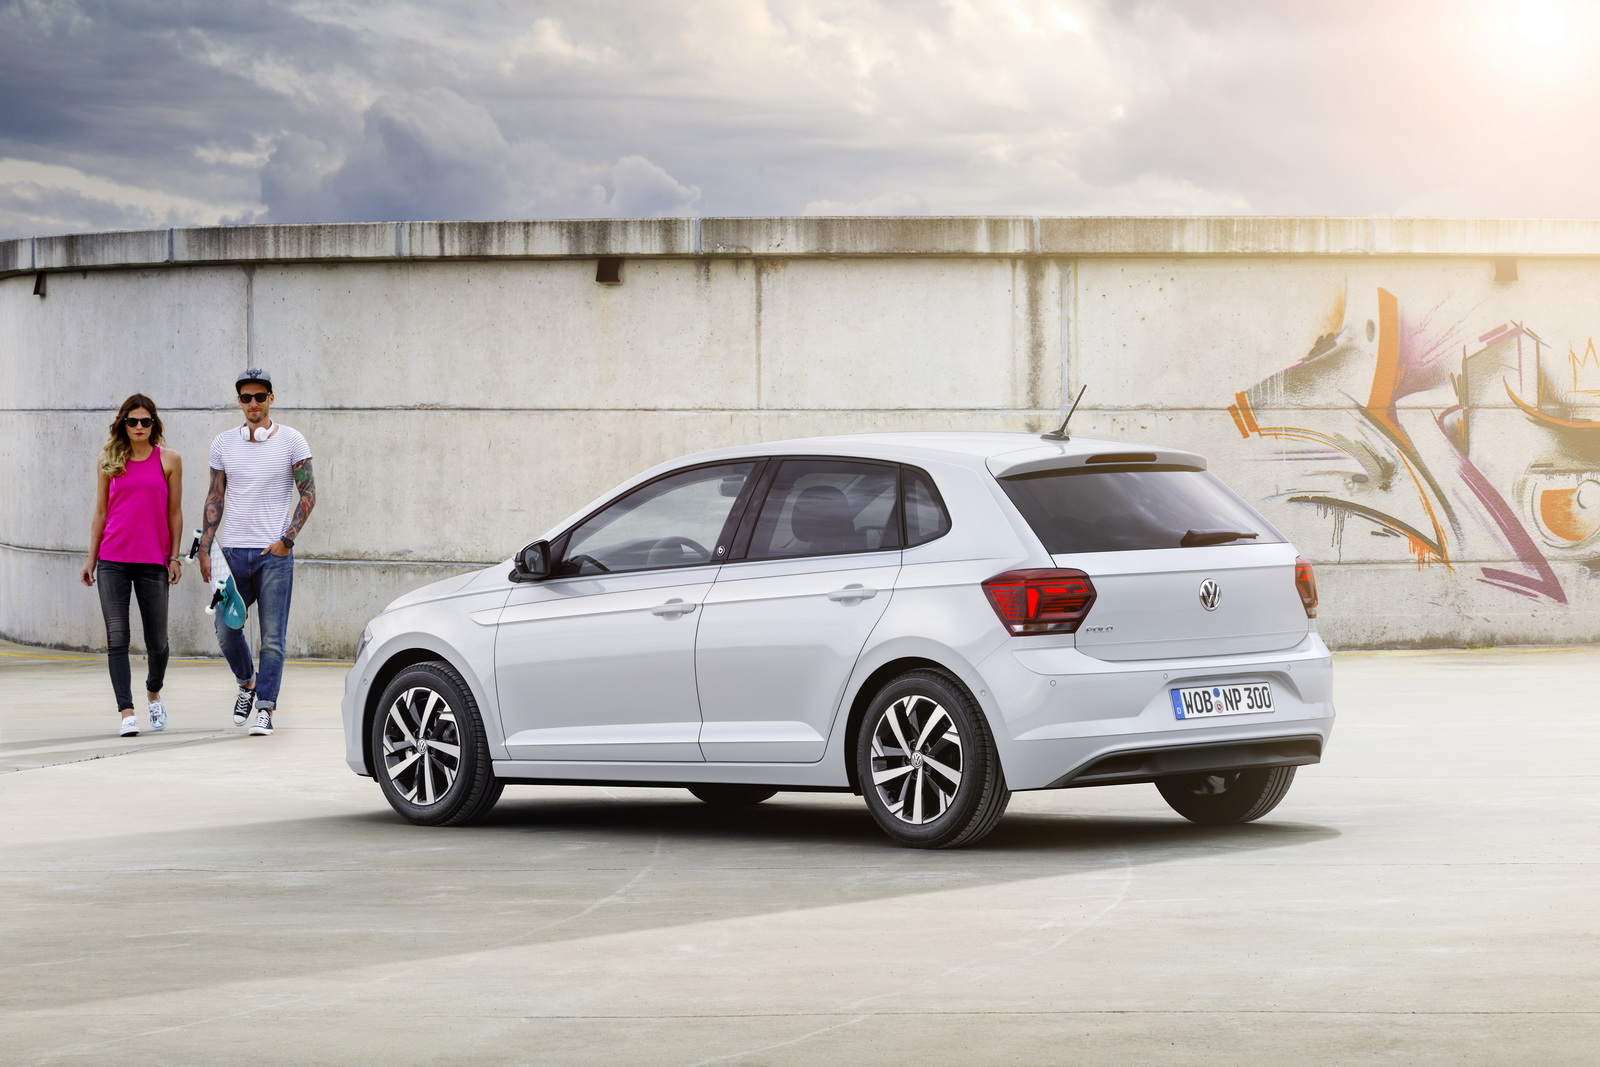 Volkswagen Polo and Polo GTI 2018 (25)